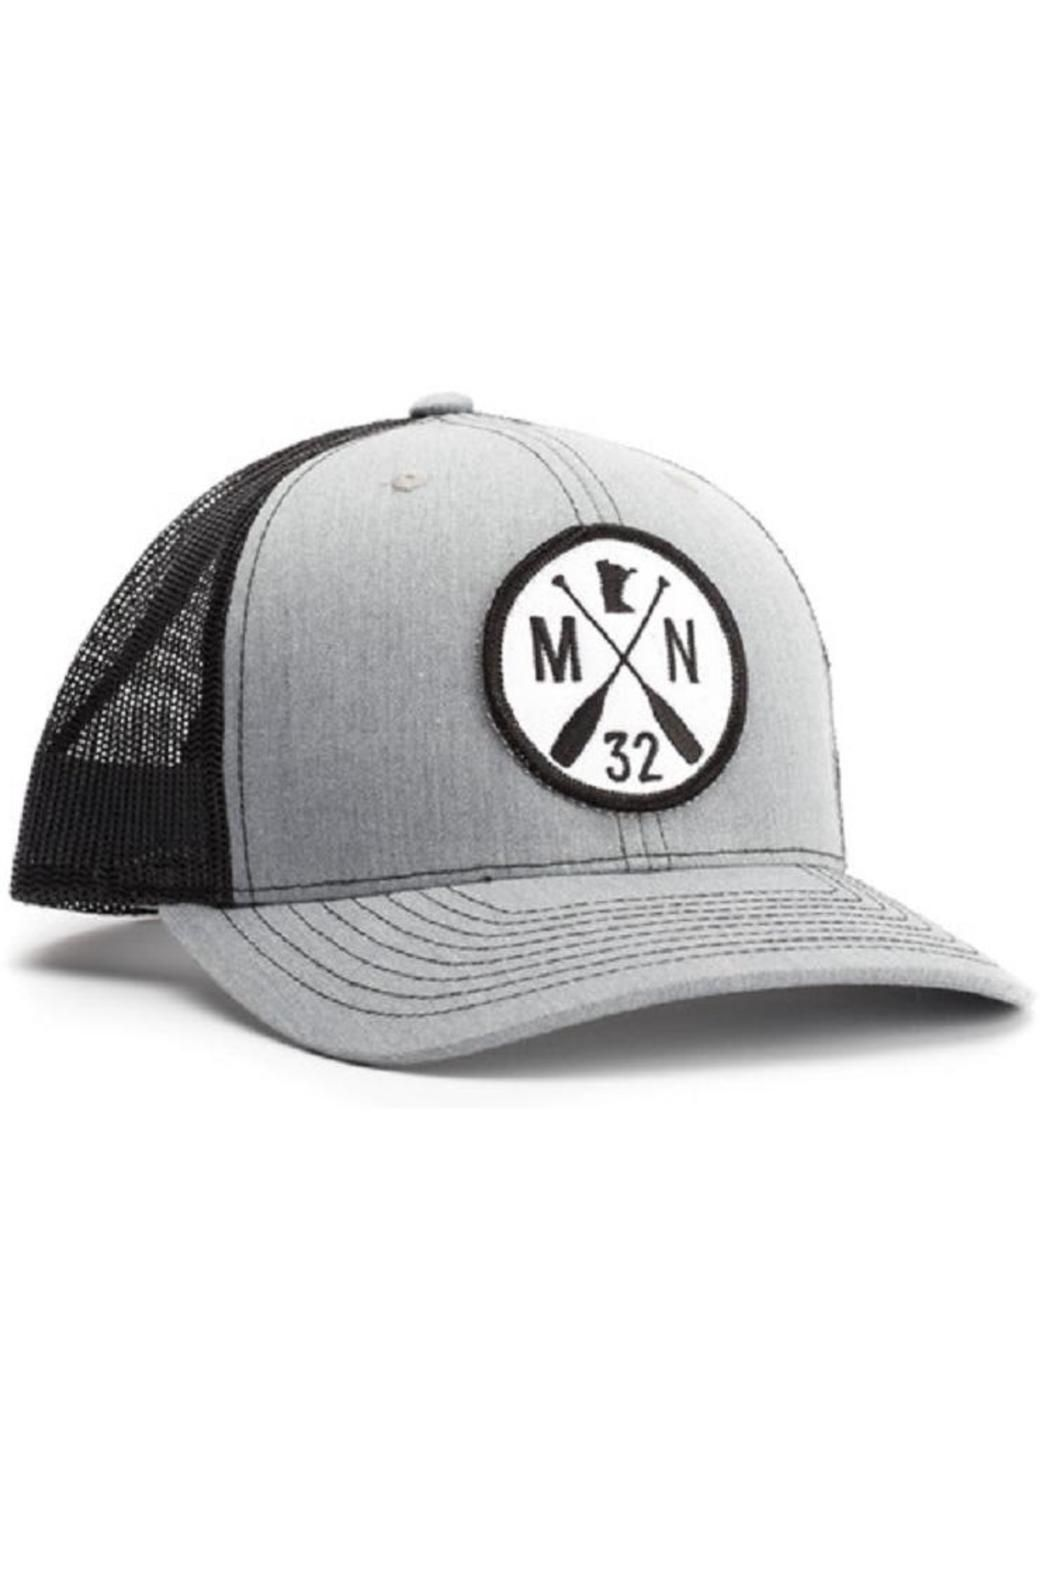 6bb5a45a24a Adjustable mesh back trucker cap with Minnesota 32 Paddle logo. The Chris  Cap by Sota Clothing Co.. Accessories - Hats Minneapolis, Minnesota